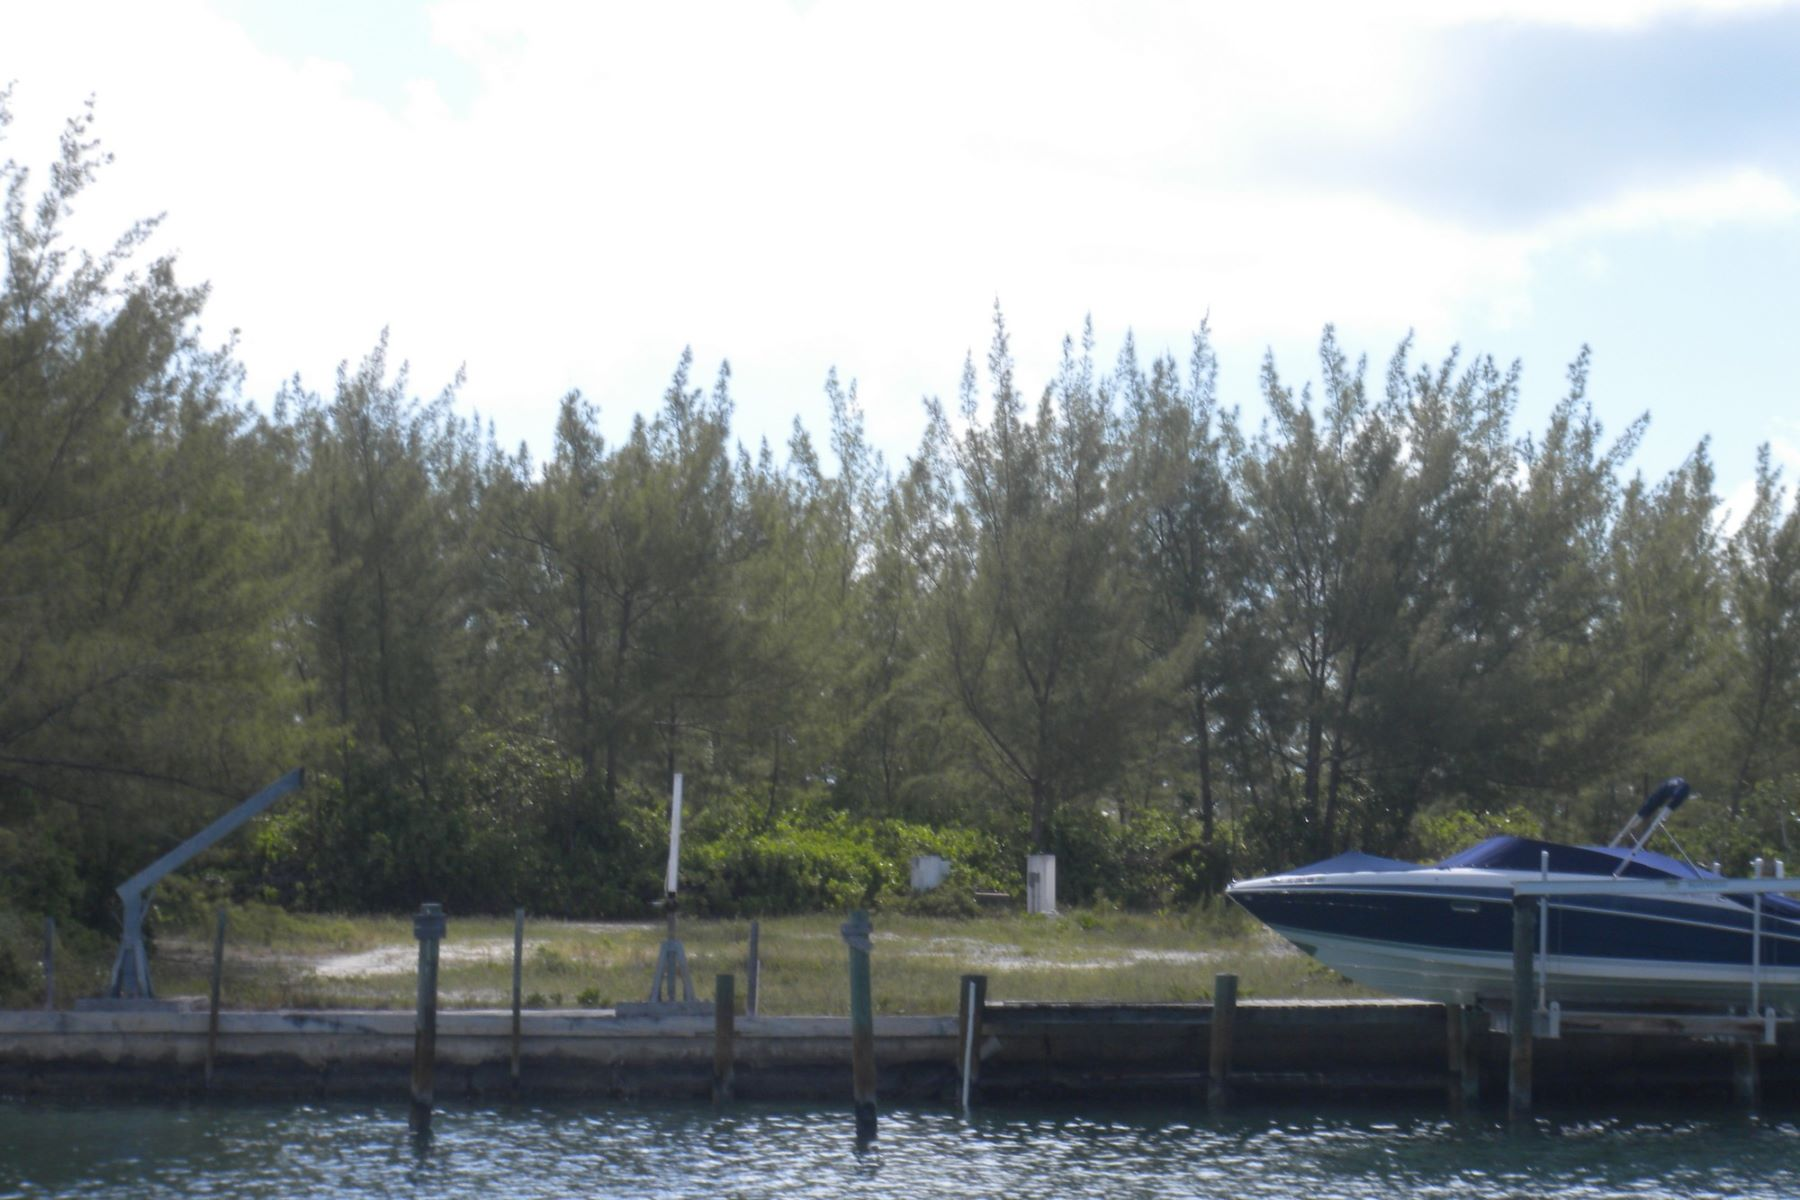 Lot 25, Block 203 Treasure Cay,  Bahamas